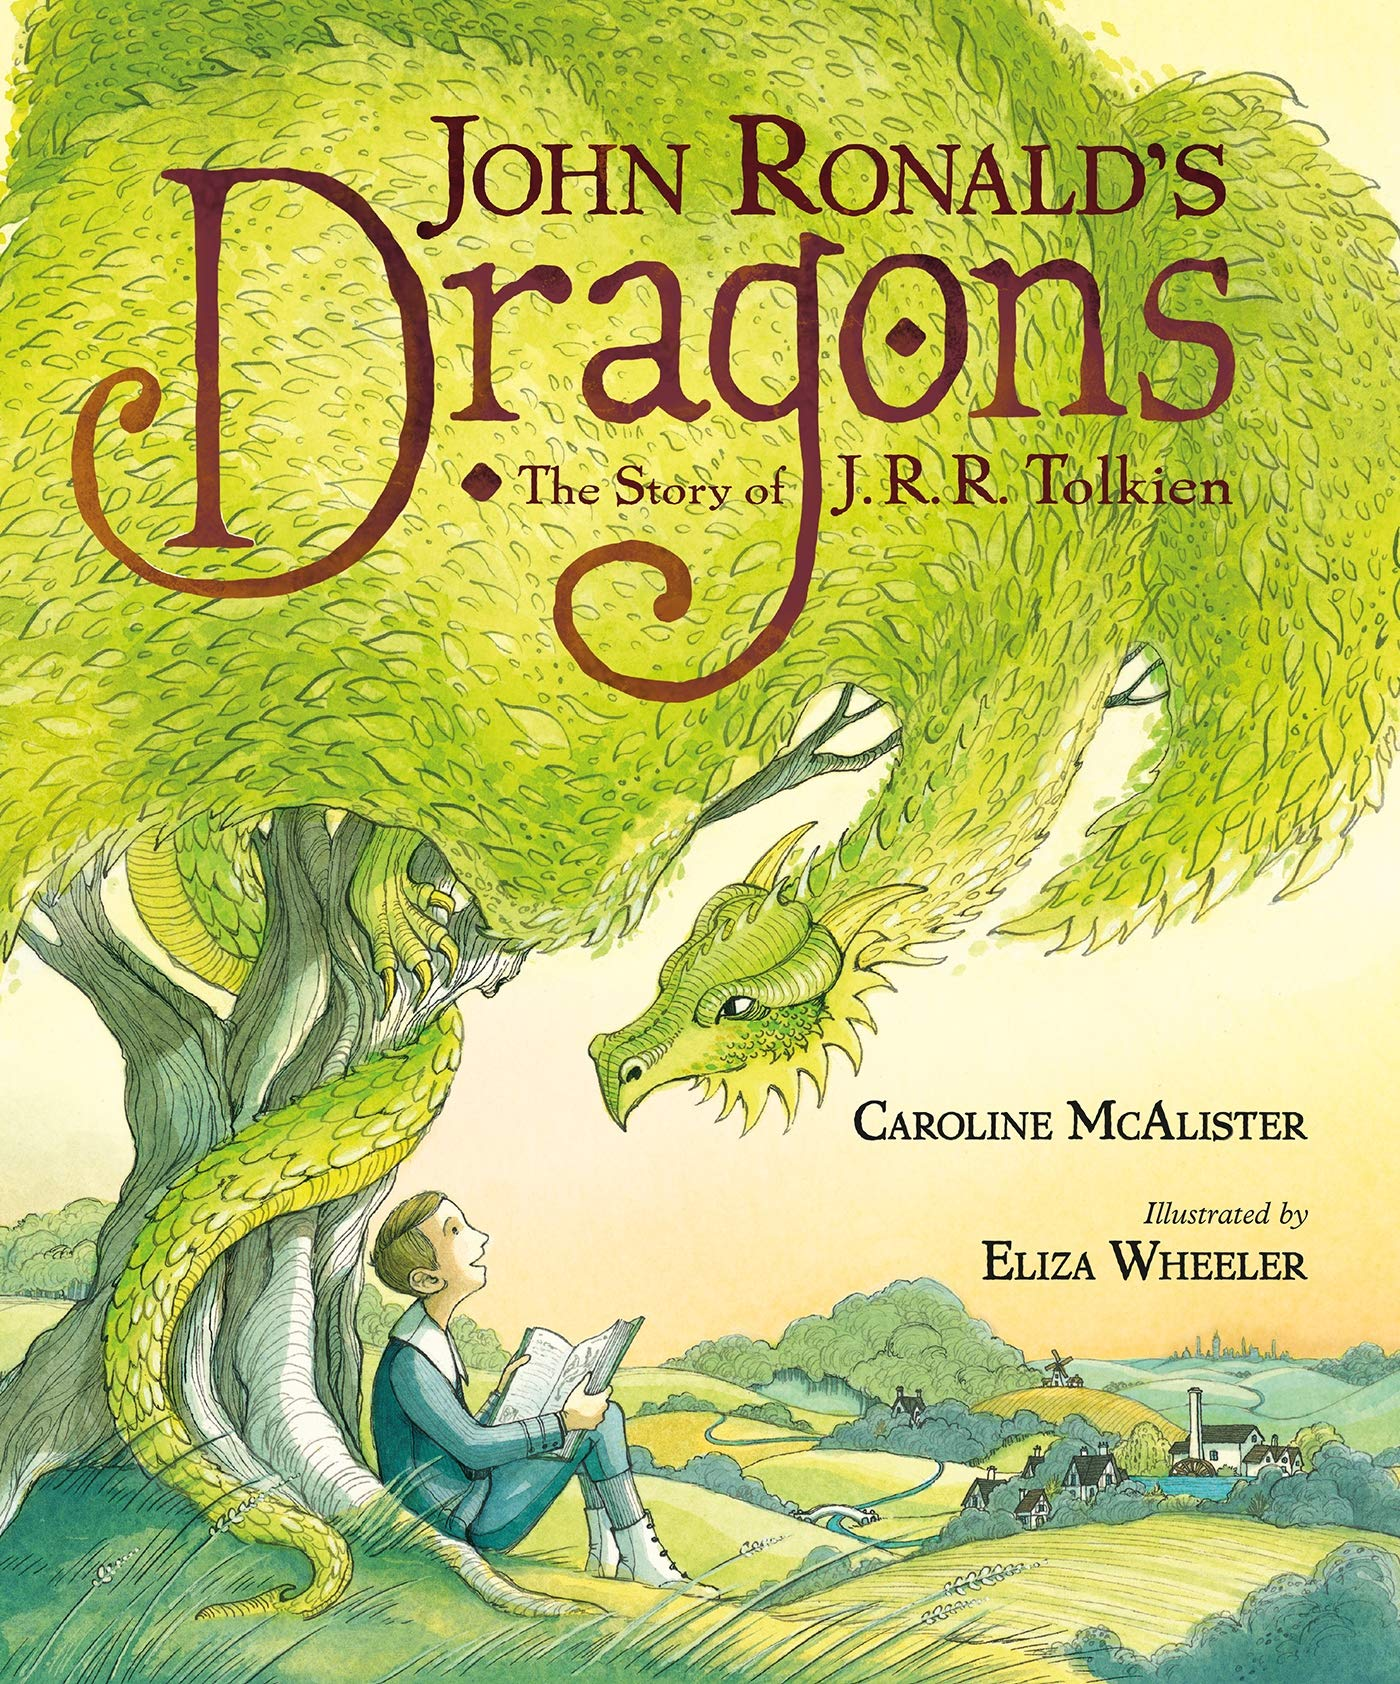 John Ronald's Dragons: The Story of J.R.R Tolkien